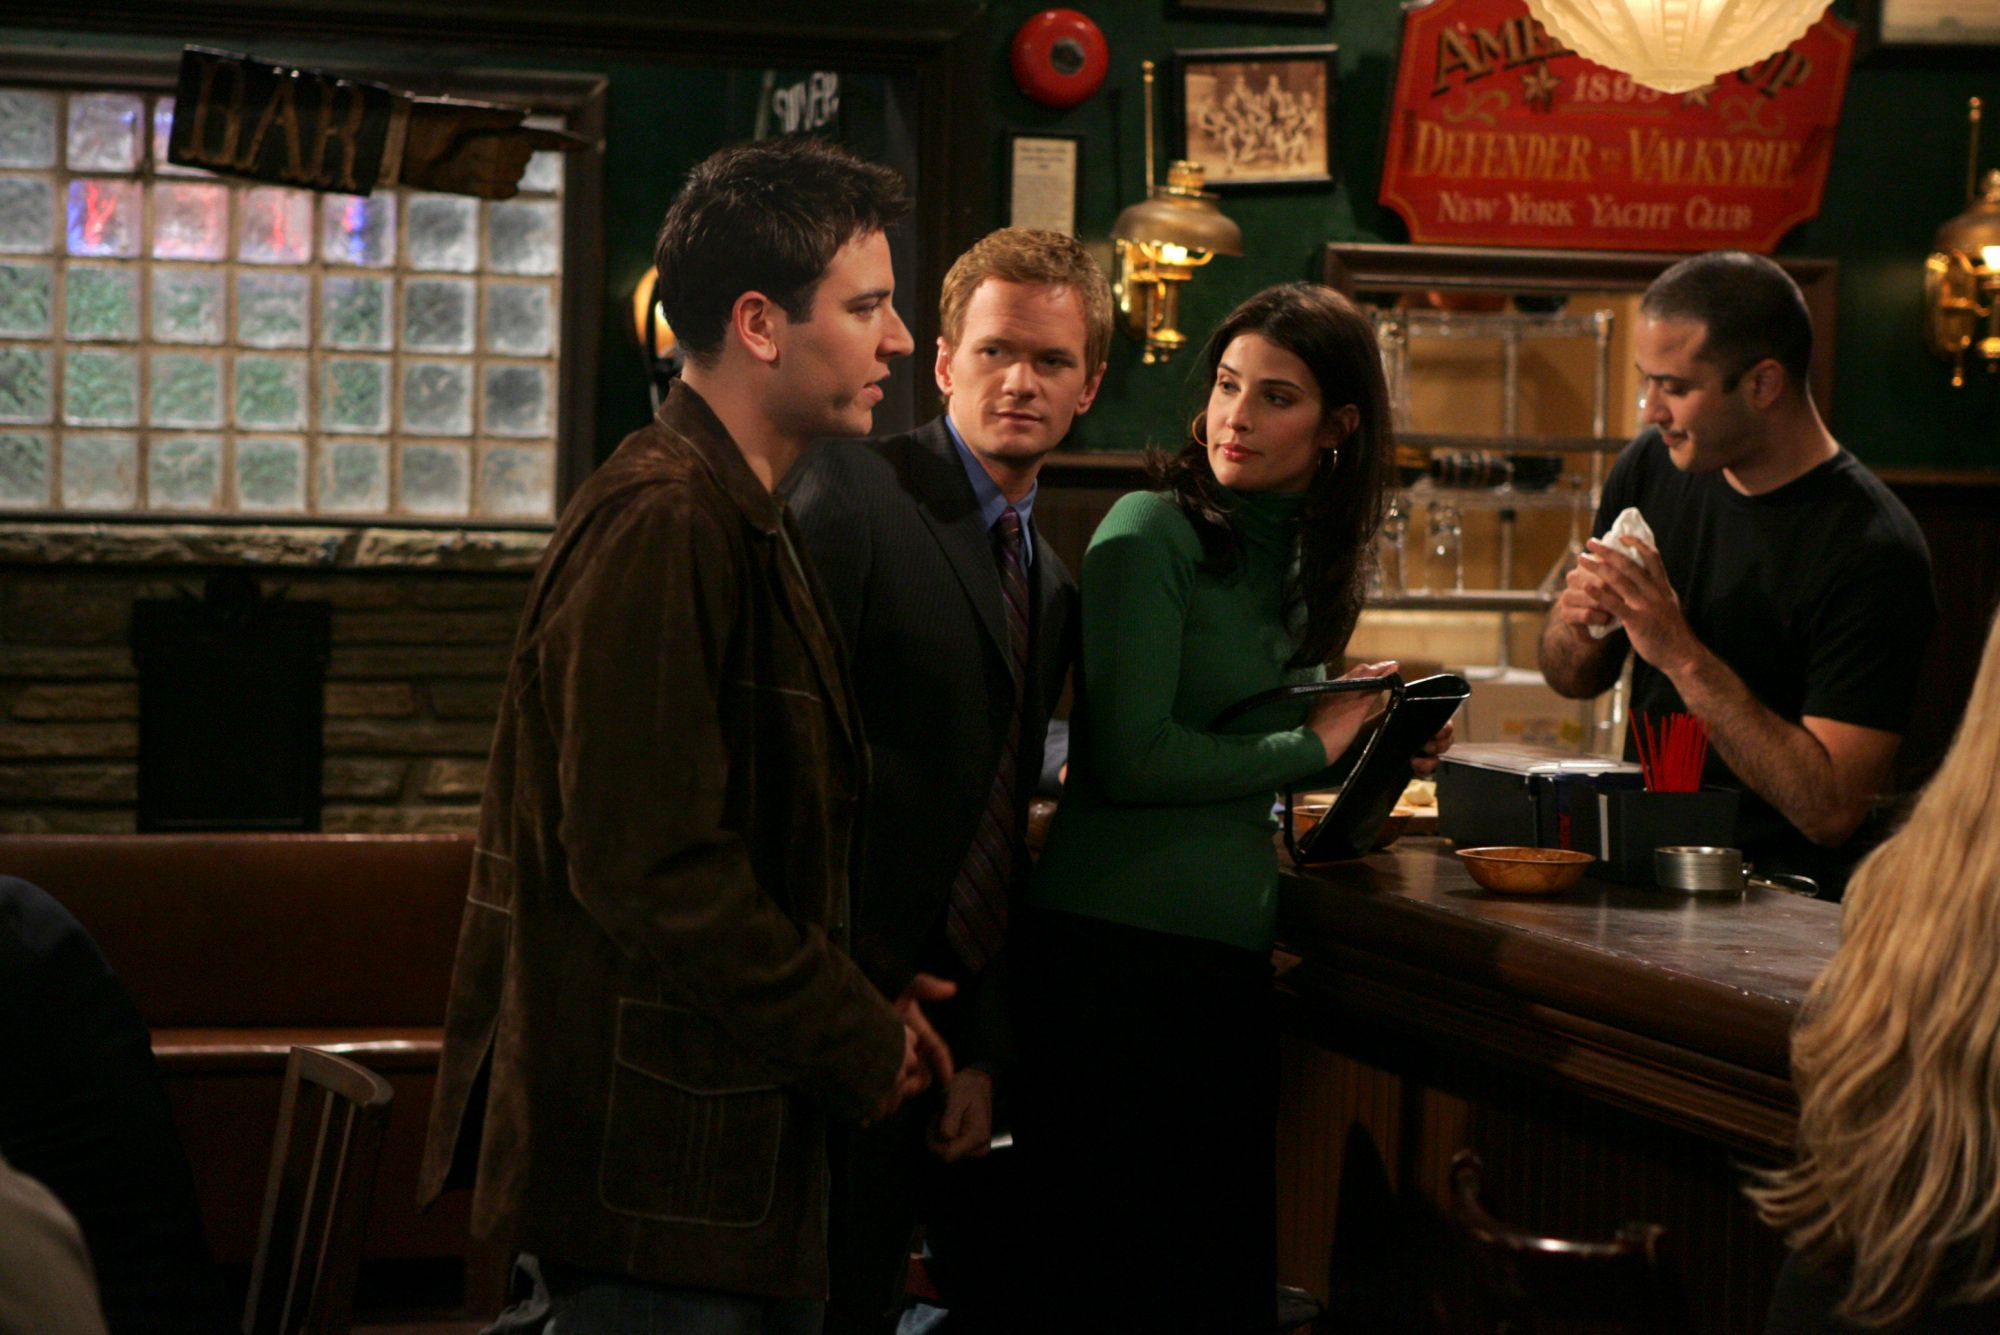 Josh Radnor, Neil Patrick Harris and Cobie Smulders in the pilot episode of